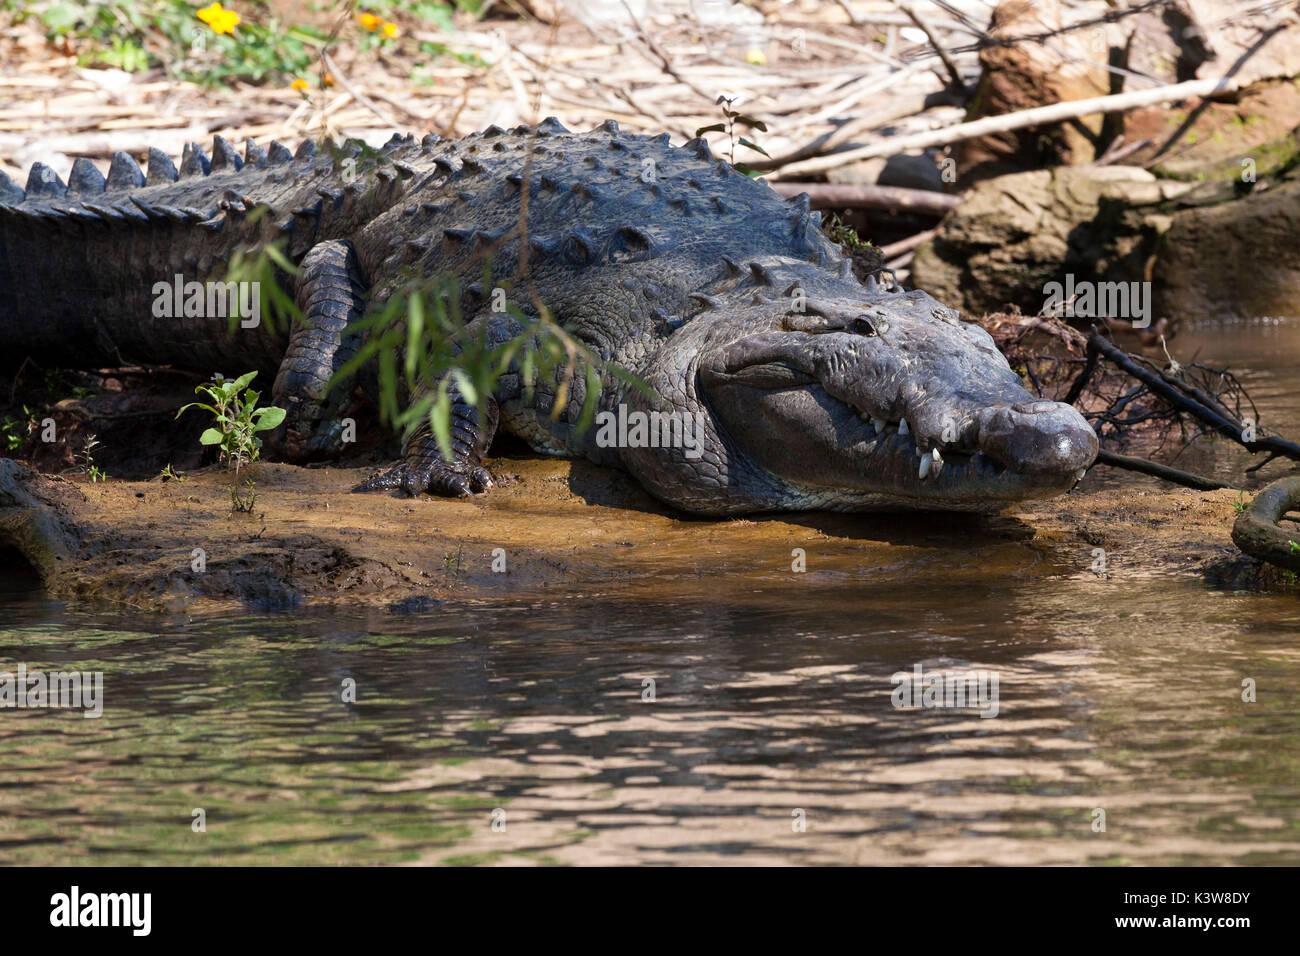 Crocodile, Sumidero Canyon, Chiapas, Mexico. - Stock Image